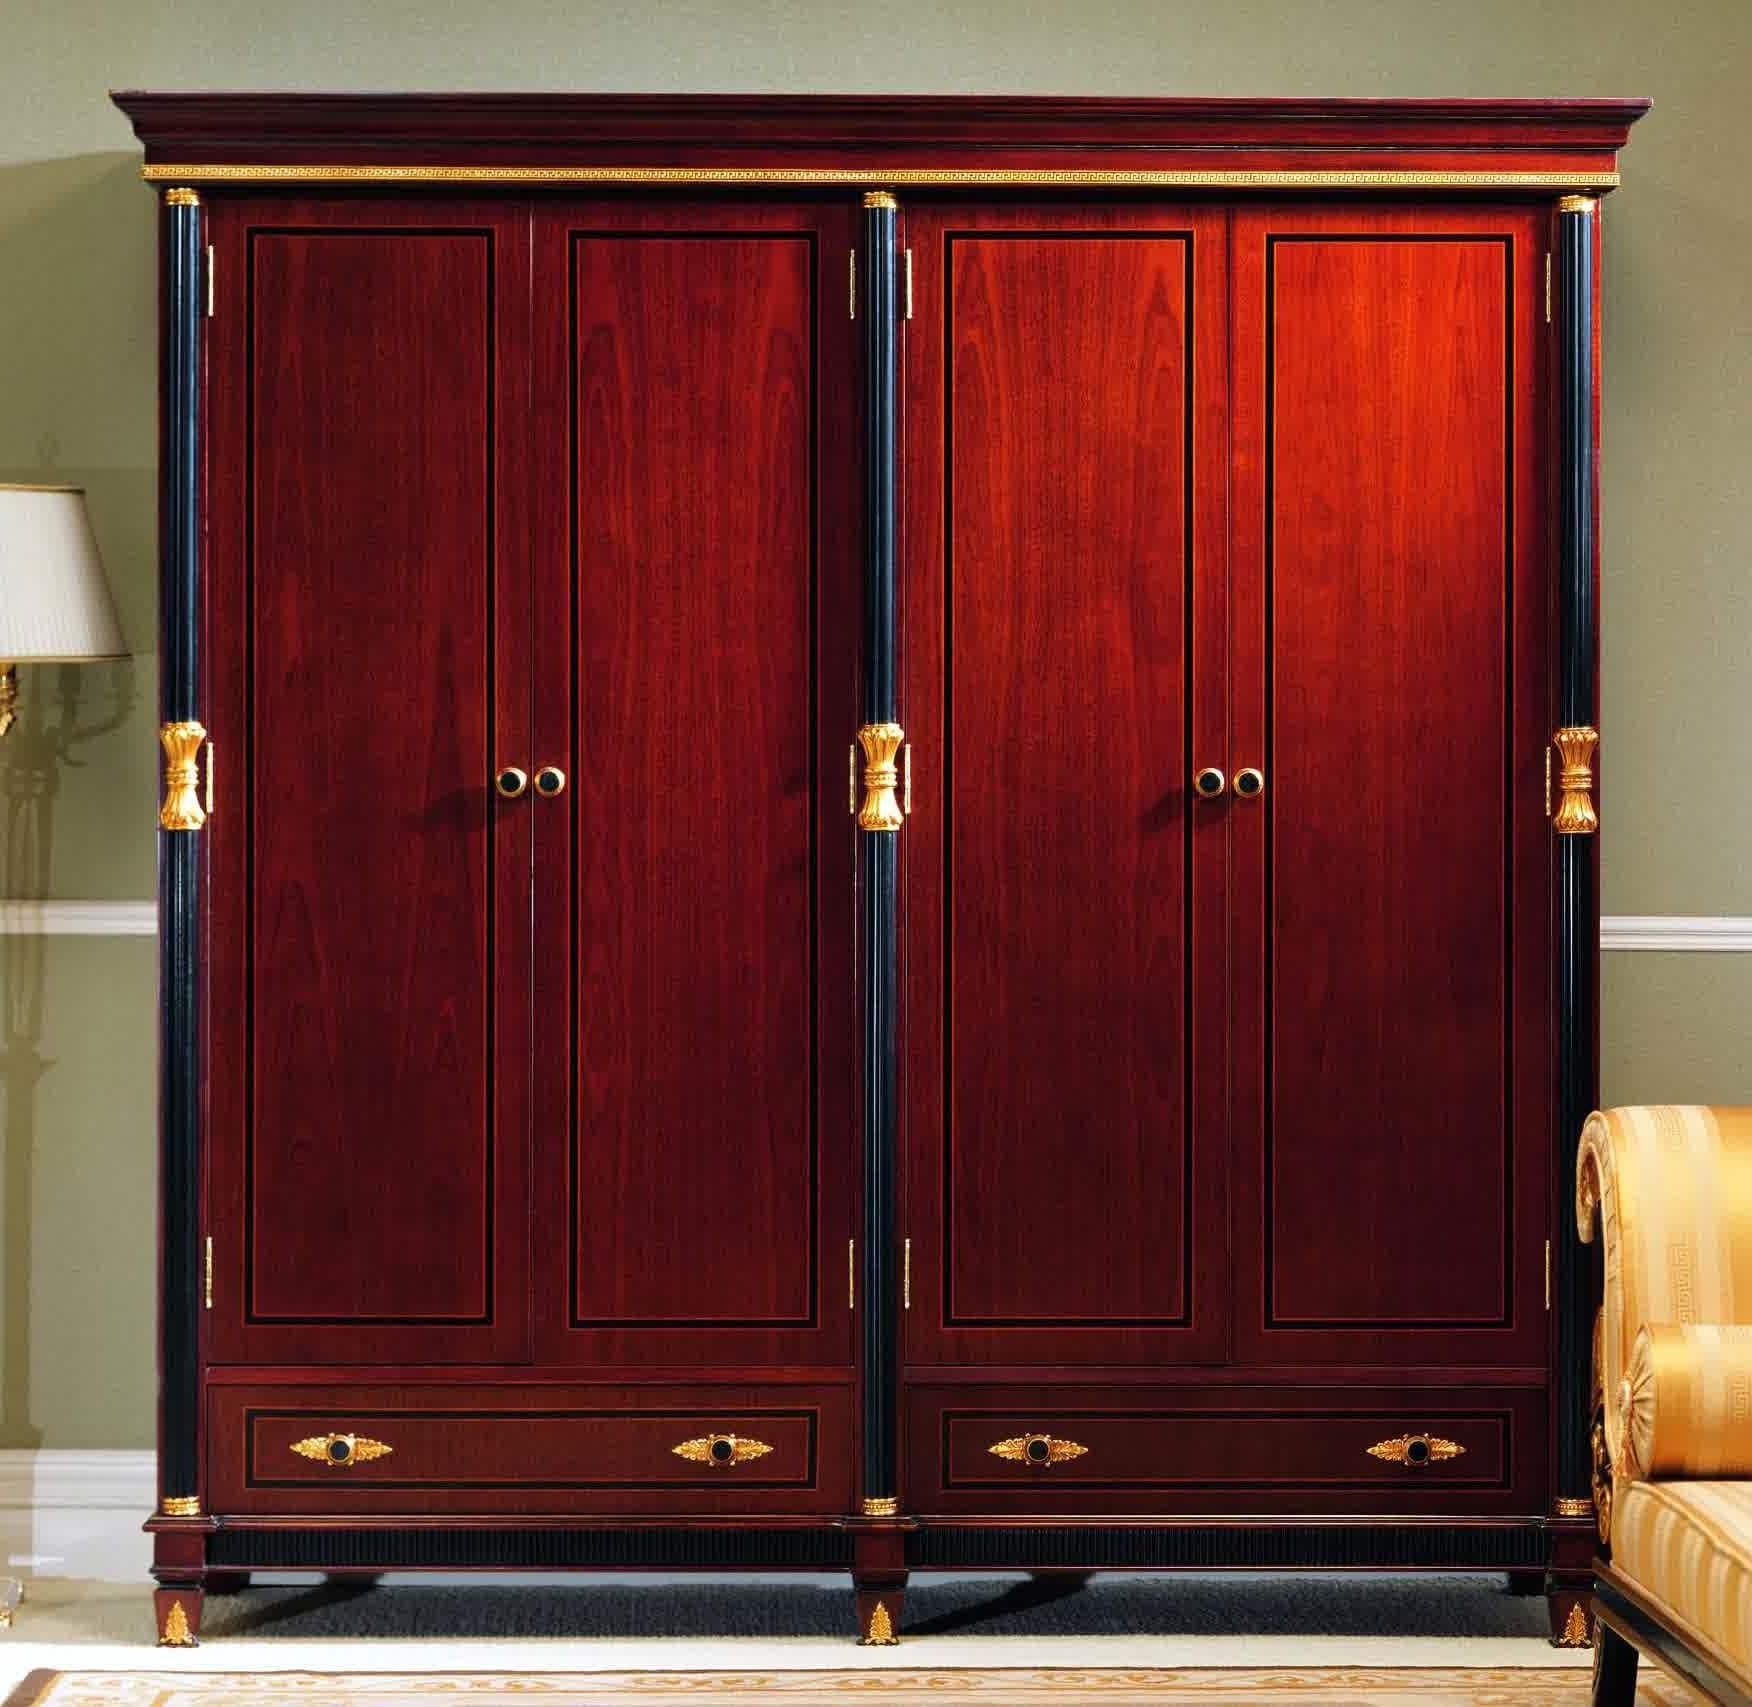 Dark Wood Wardrobes With Mirror Intended For Widely Used Furniture: Exciting Armoire Wardrobe For Interior Storage Design (View 4 of 15)